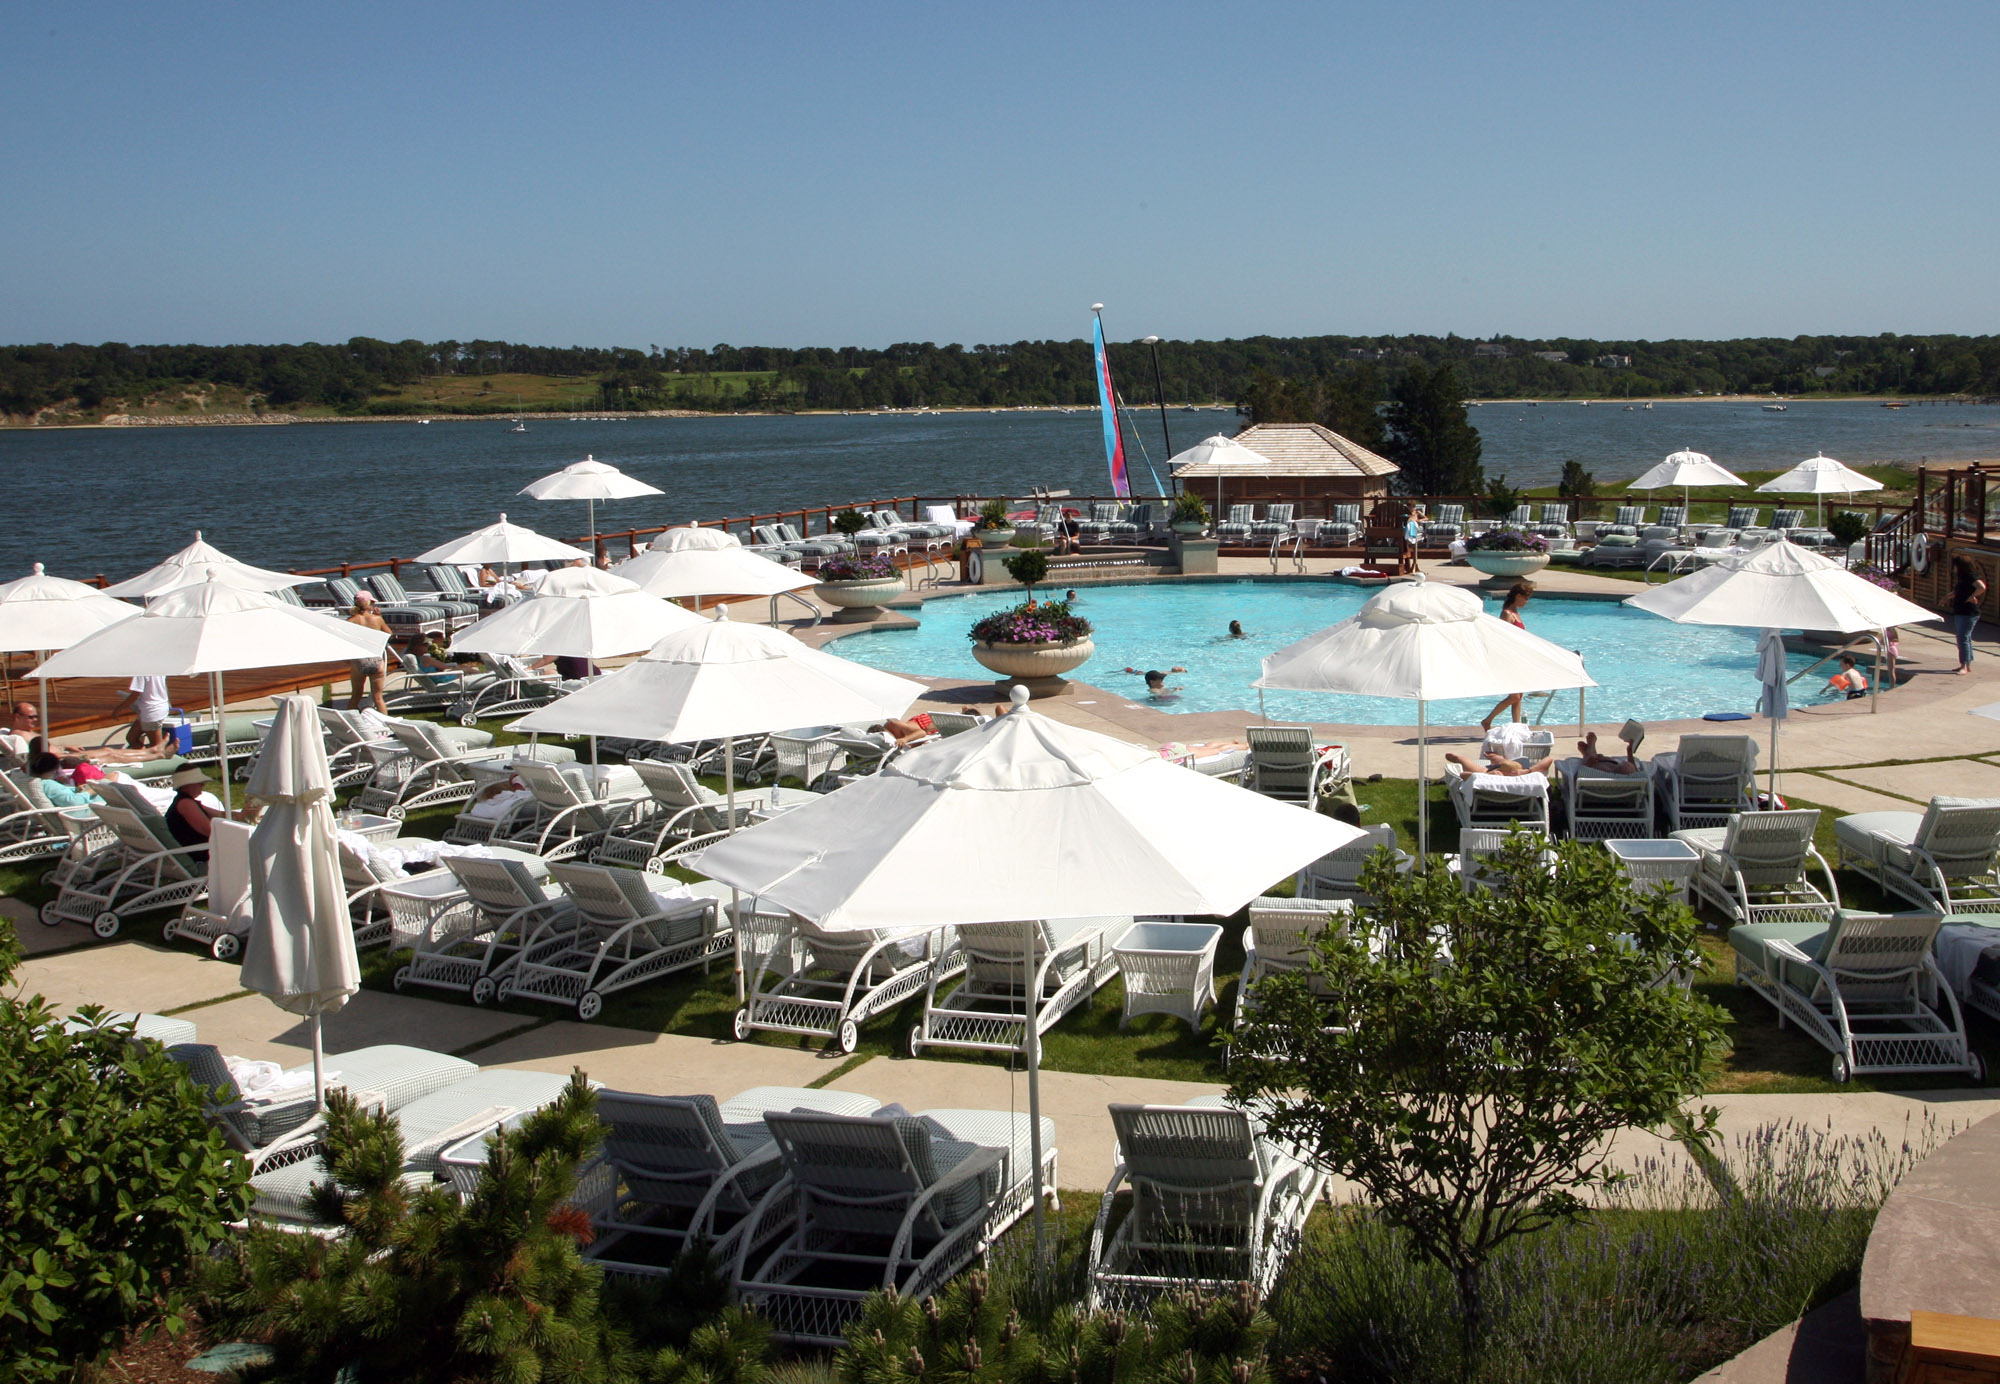 Best beachfront hotels on Cape Cod according to